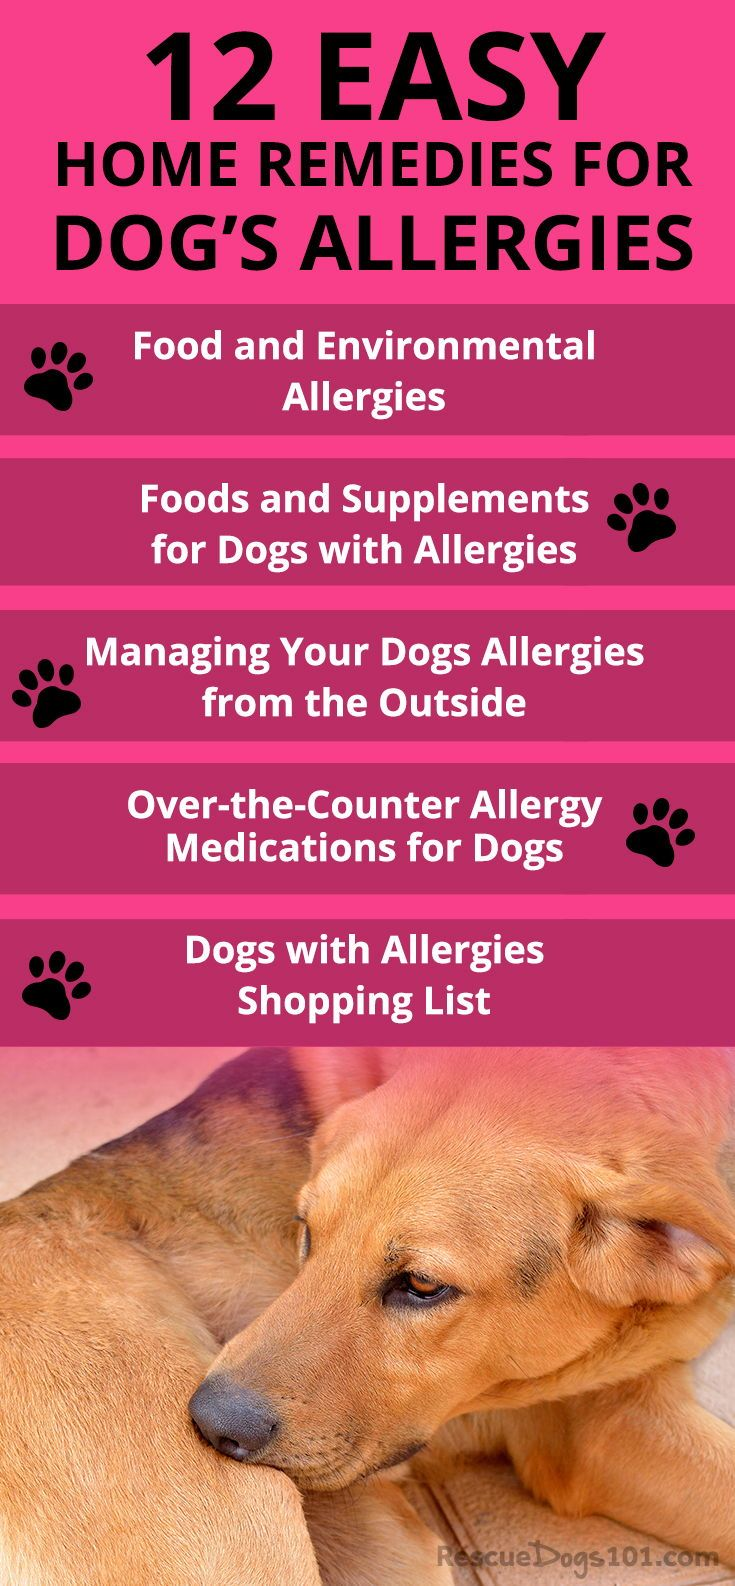 The Ultimate Guide To Home Remedies For Dog Allergies Dog Allergies Remedies Dog Allergies Dog Remedies